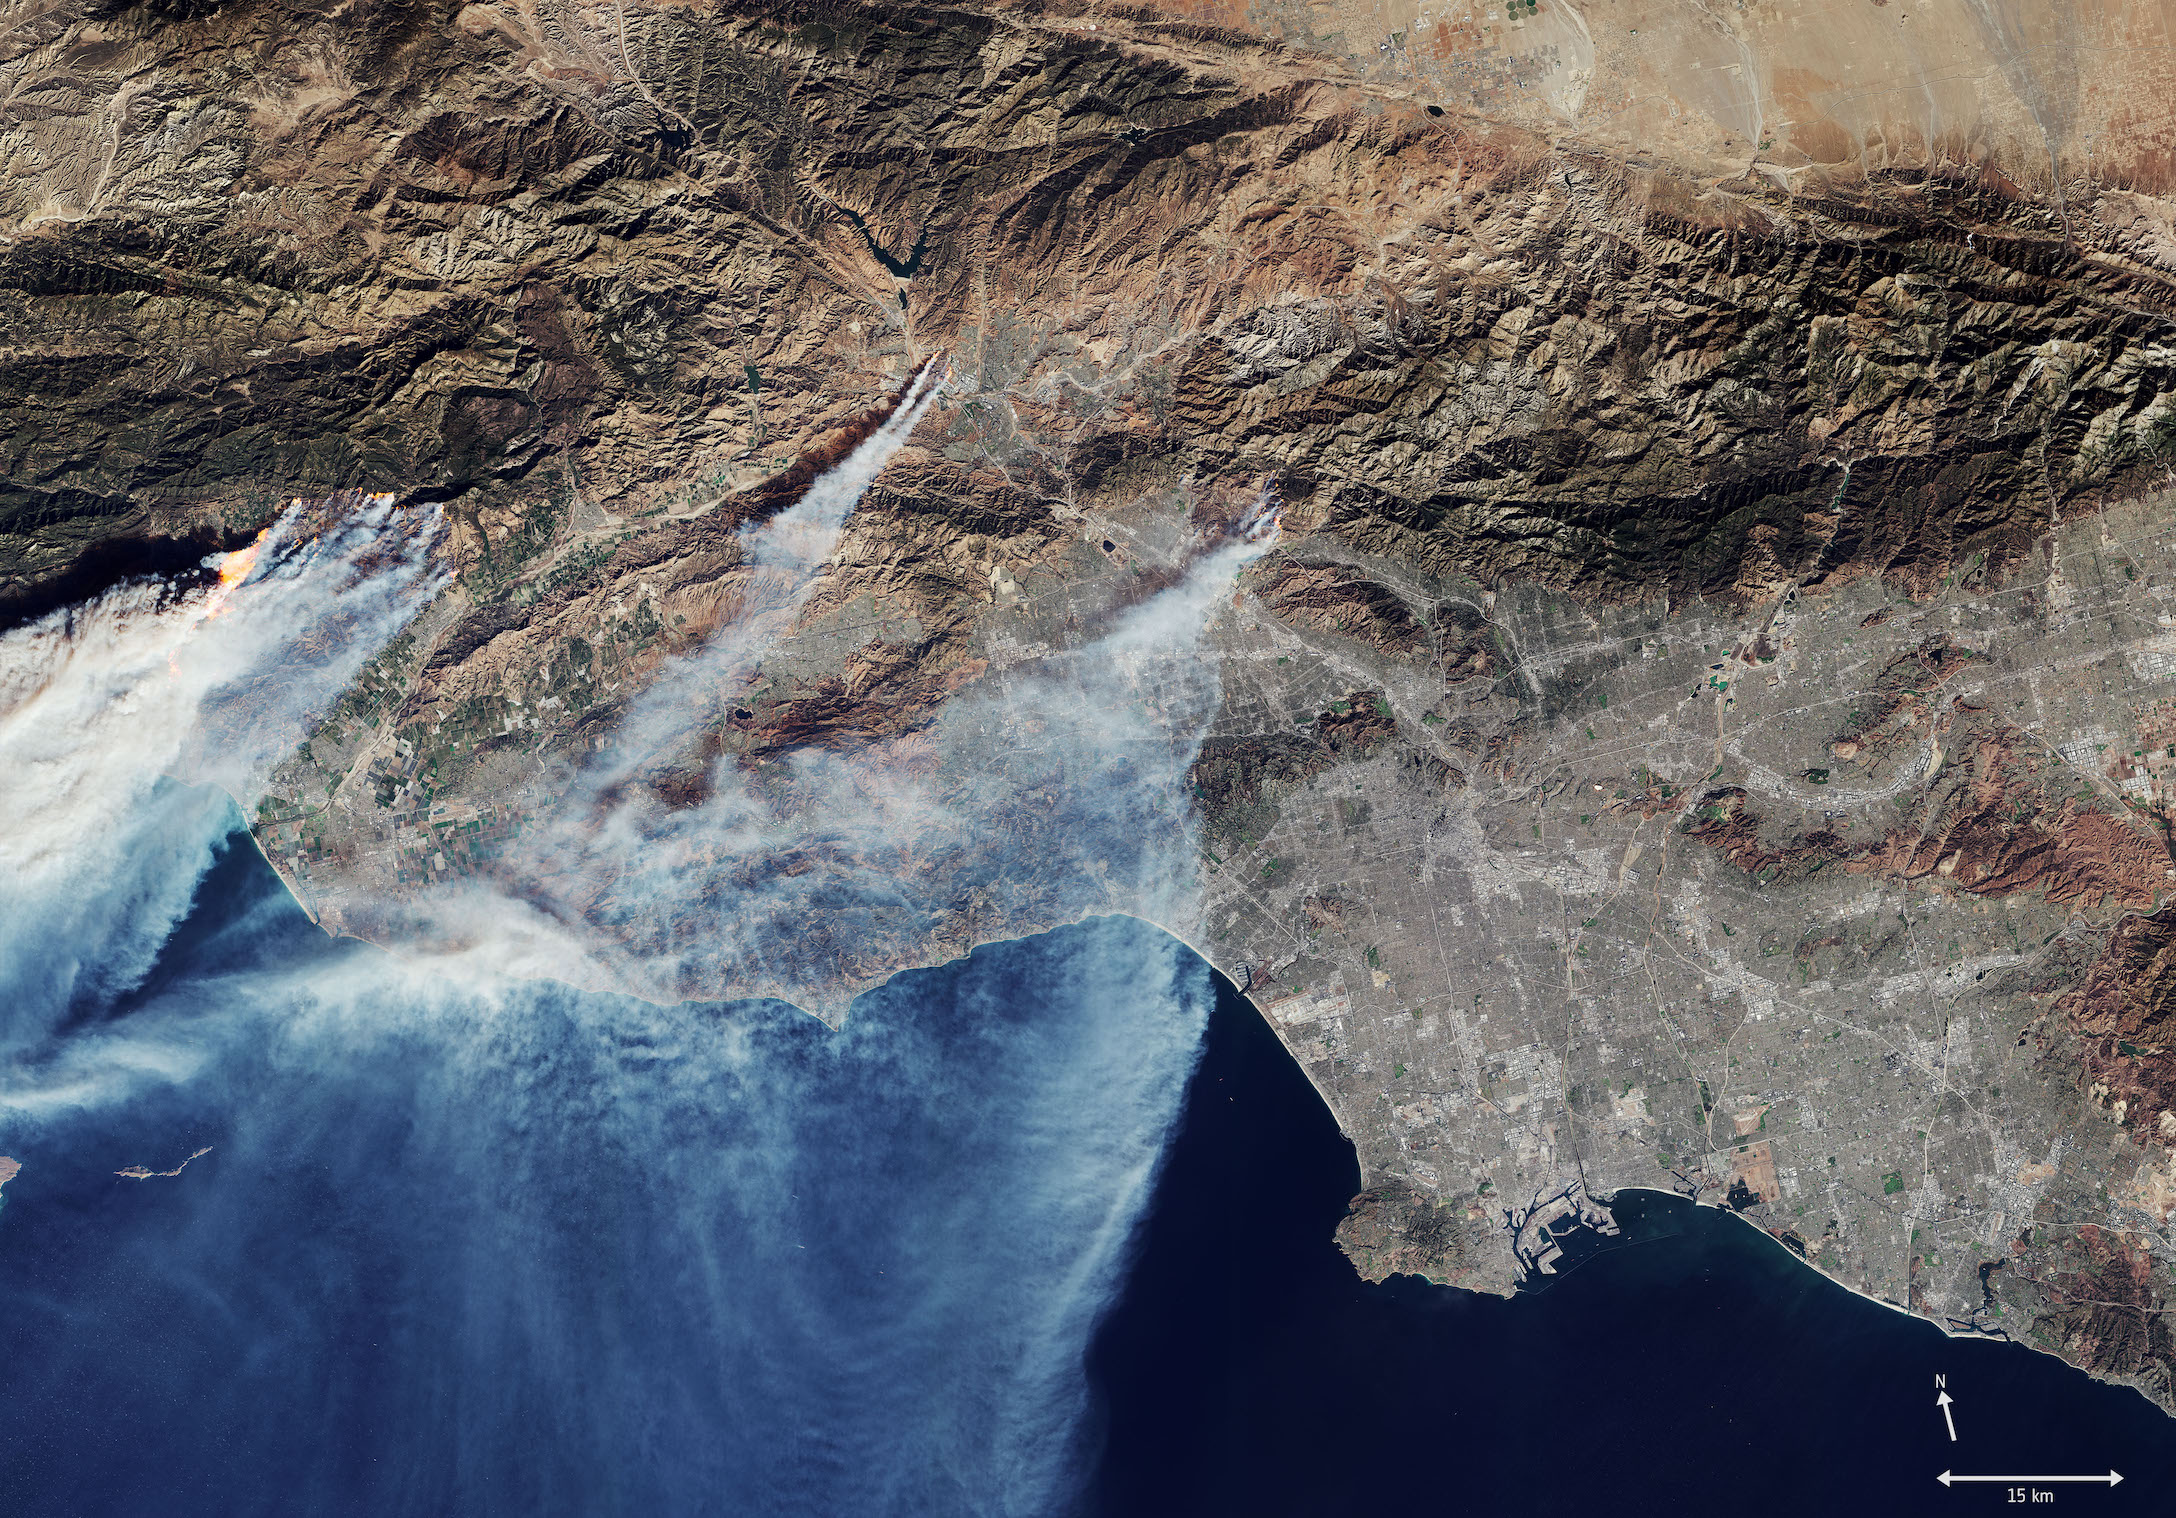 Today's Image of the Day comes from the European Space Agency and features a look at the devastating wildfires burning in southern California this week.